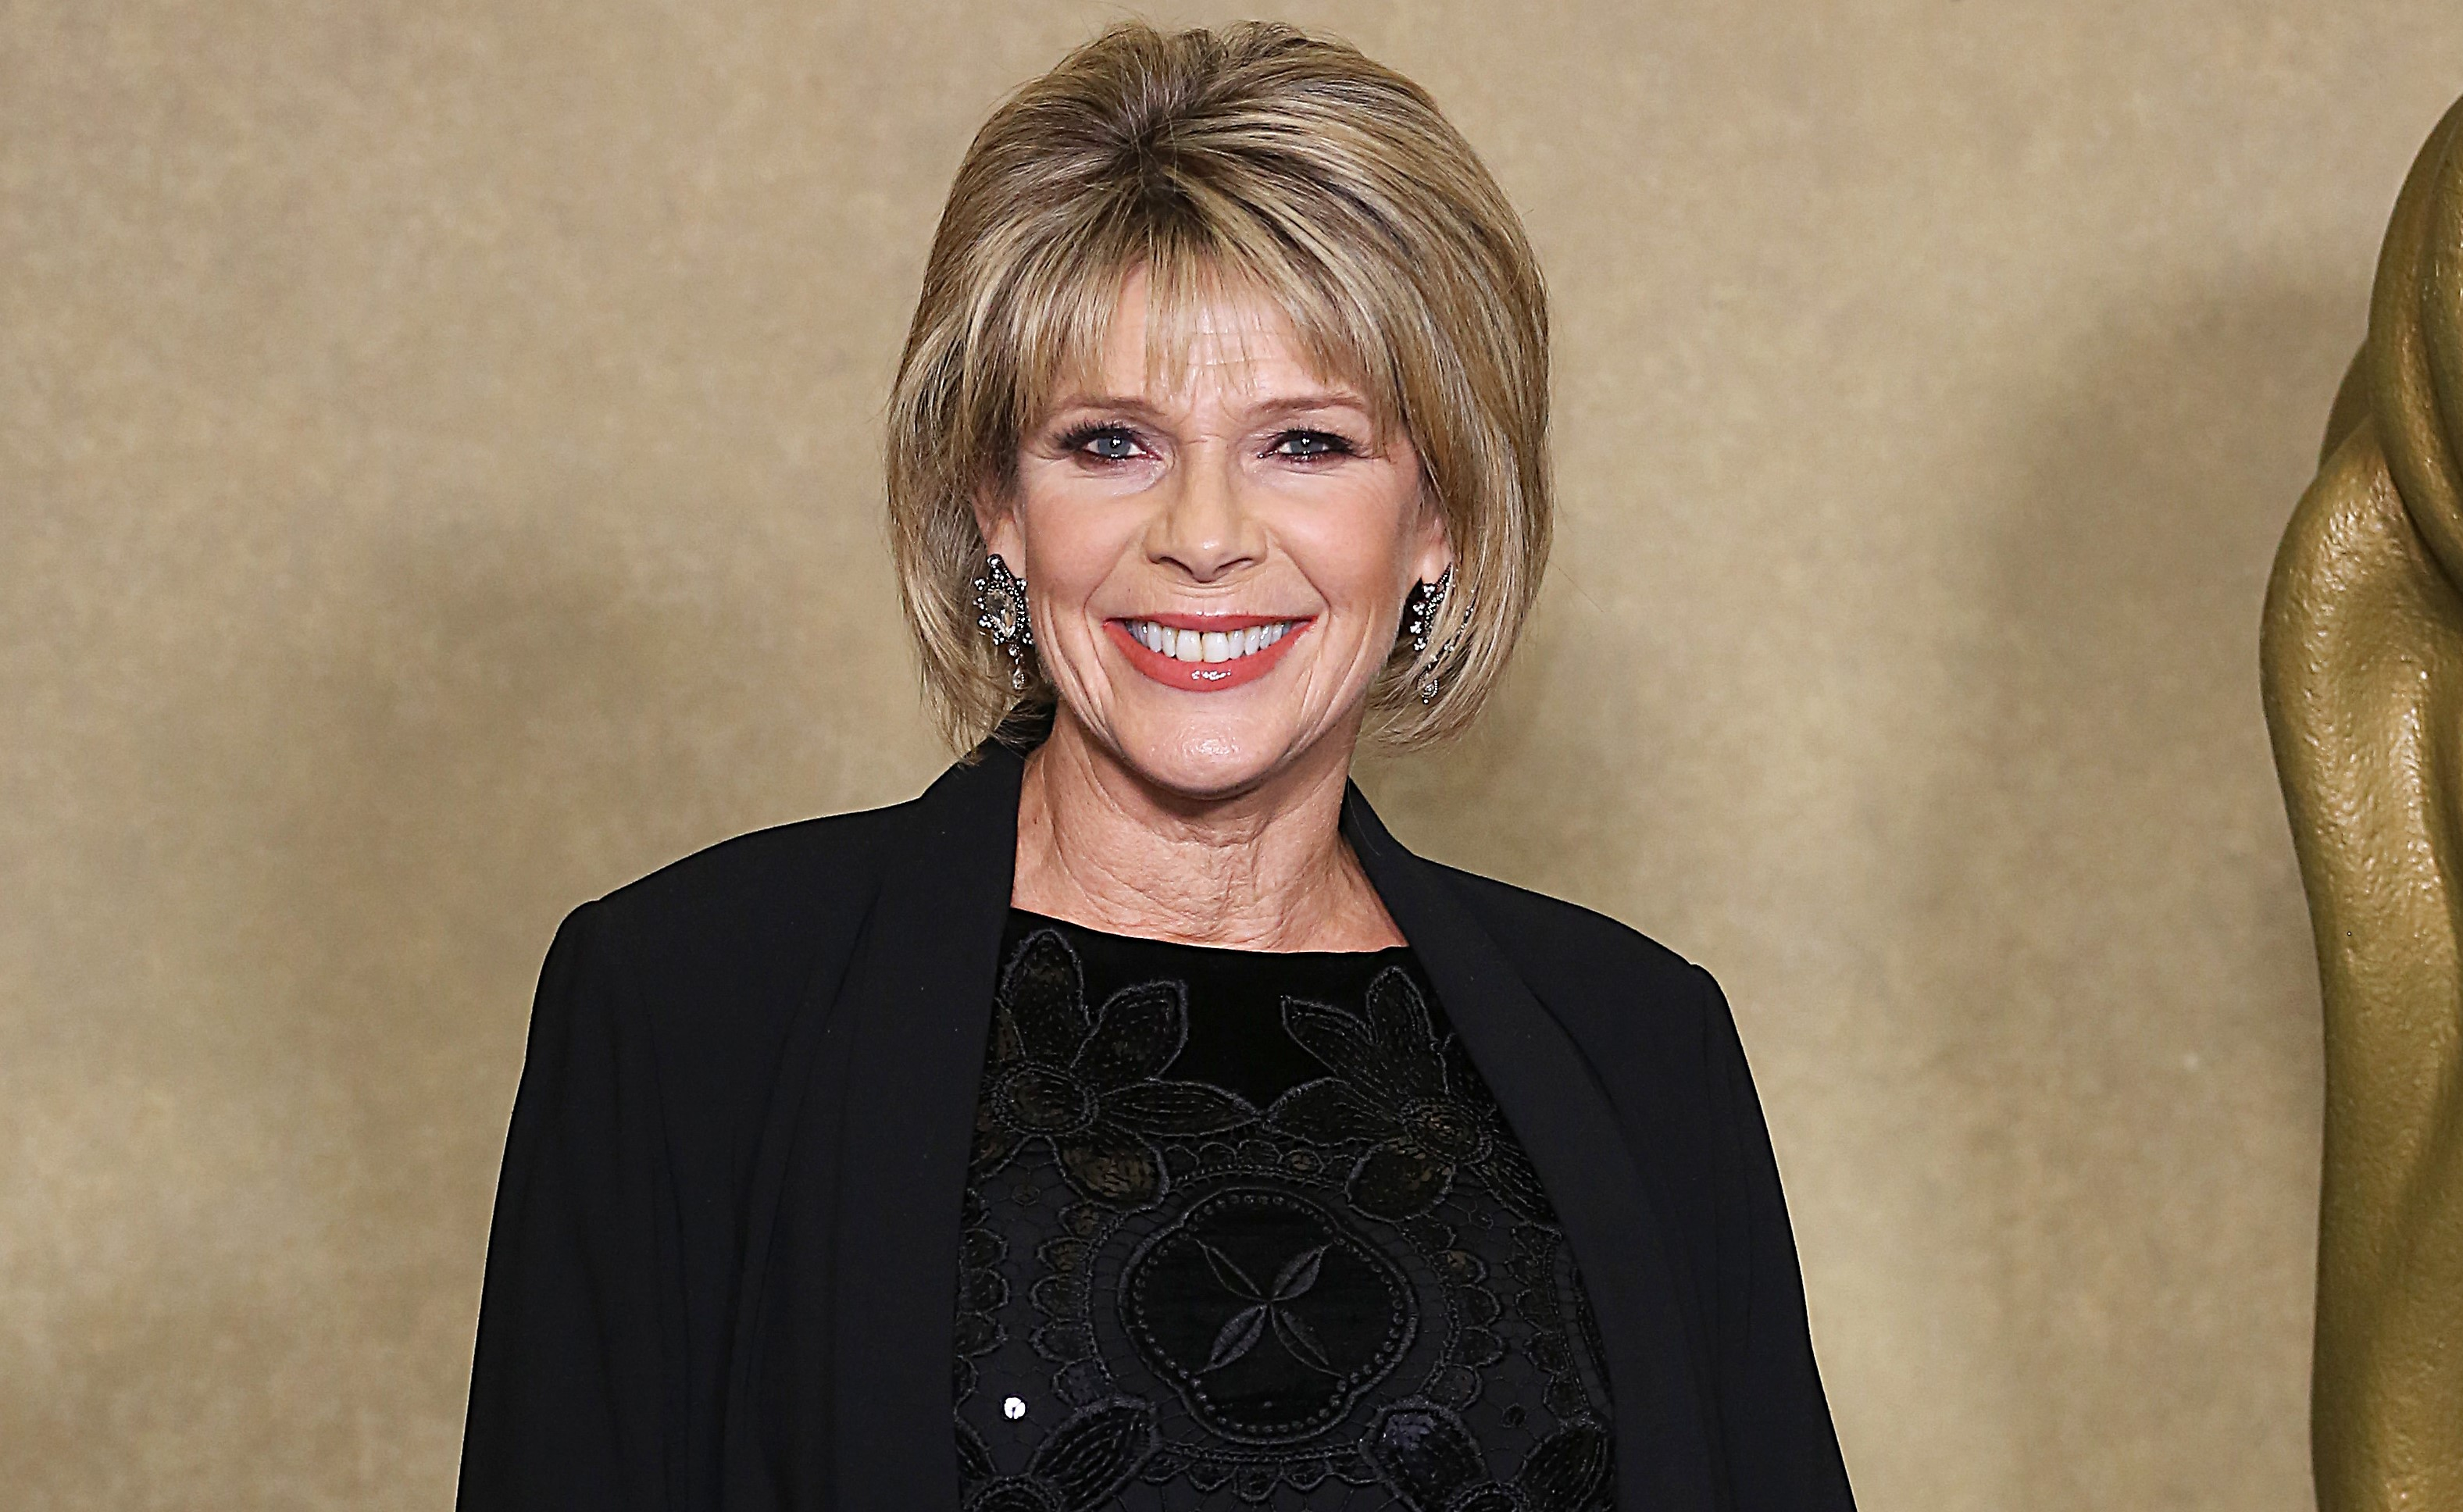 Ruth Langsford hits back at rumours she's giving up TV career to 'sell diet pills'